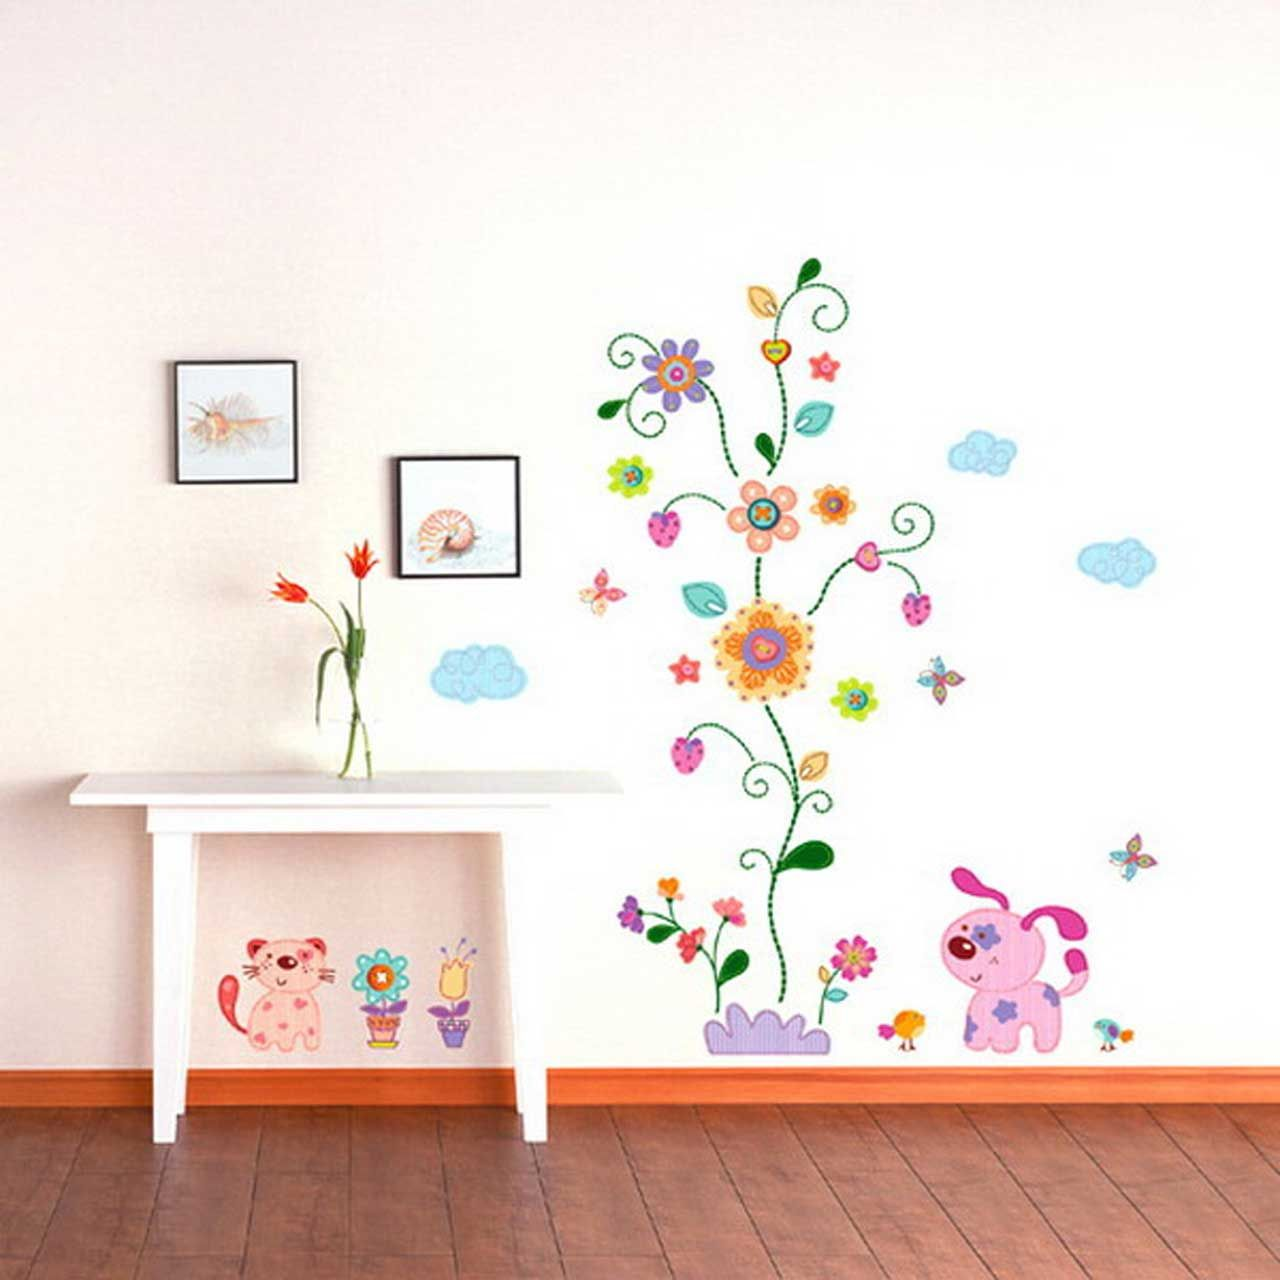 Beautiful kids room decorating design ideas with creative for Room wall art ideas